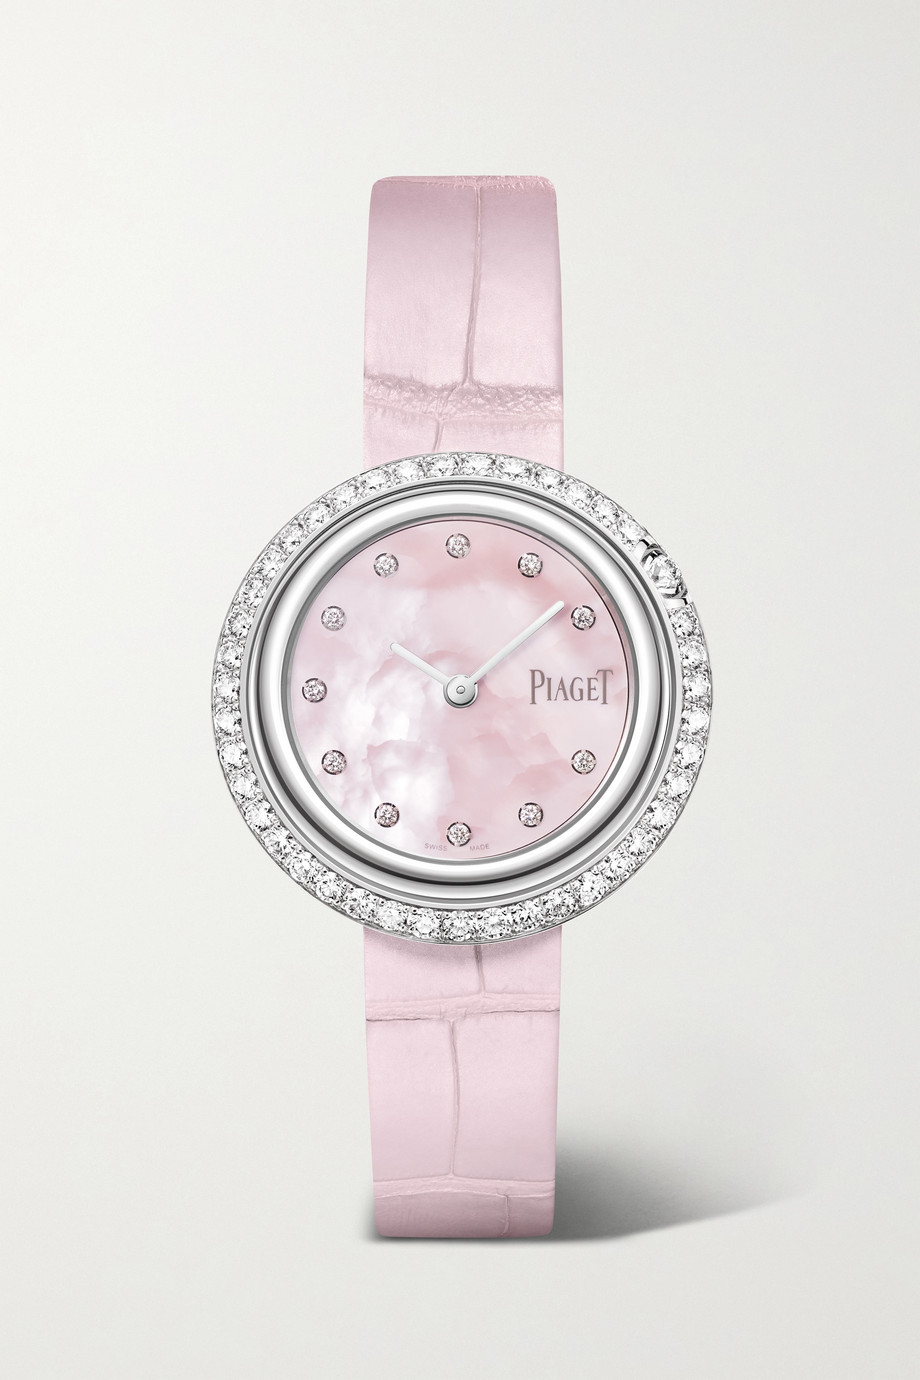 Piaget Montre en or blanc 18 carats et diamants à bracelet en alligator Possession 29 mm